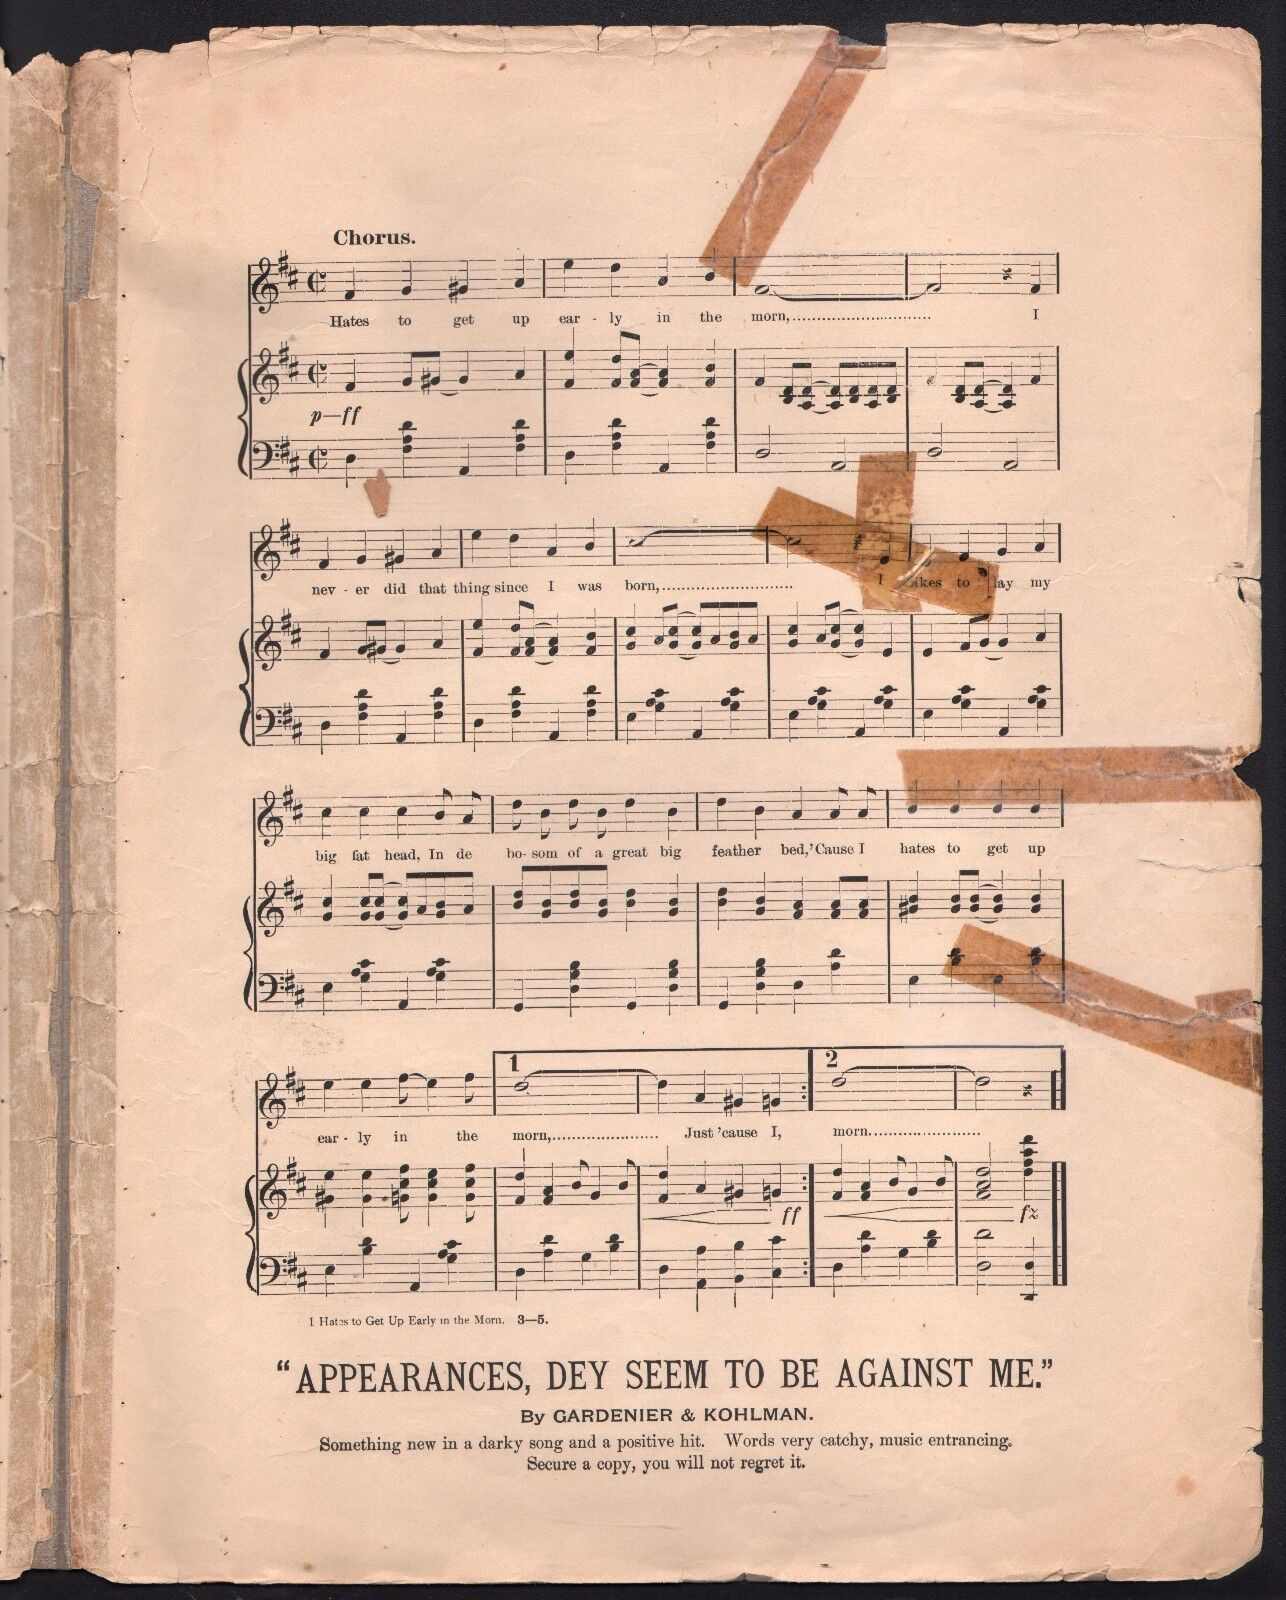 I Hates to Get Up Early In In In De Morn 1901 Josephine Sabel Large Format Sheet Music b148a8